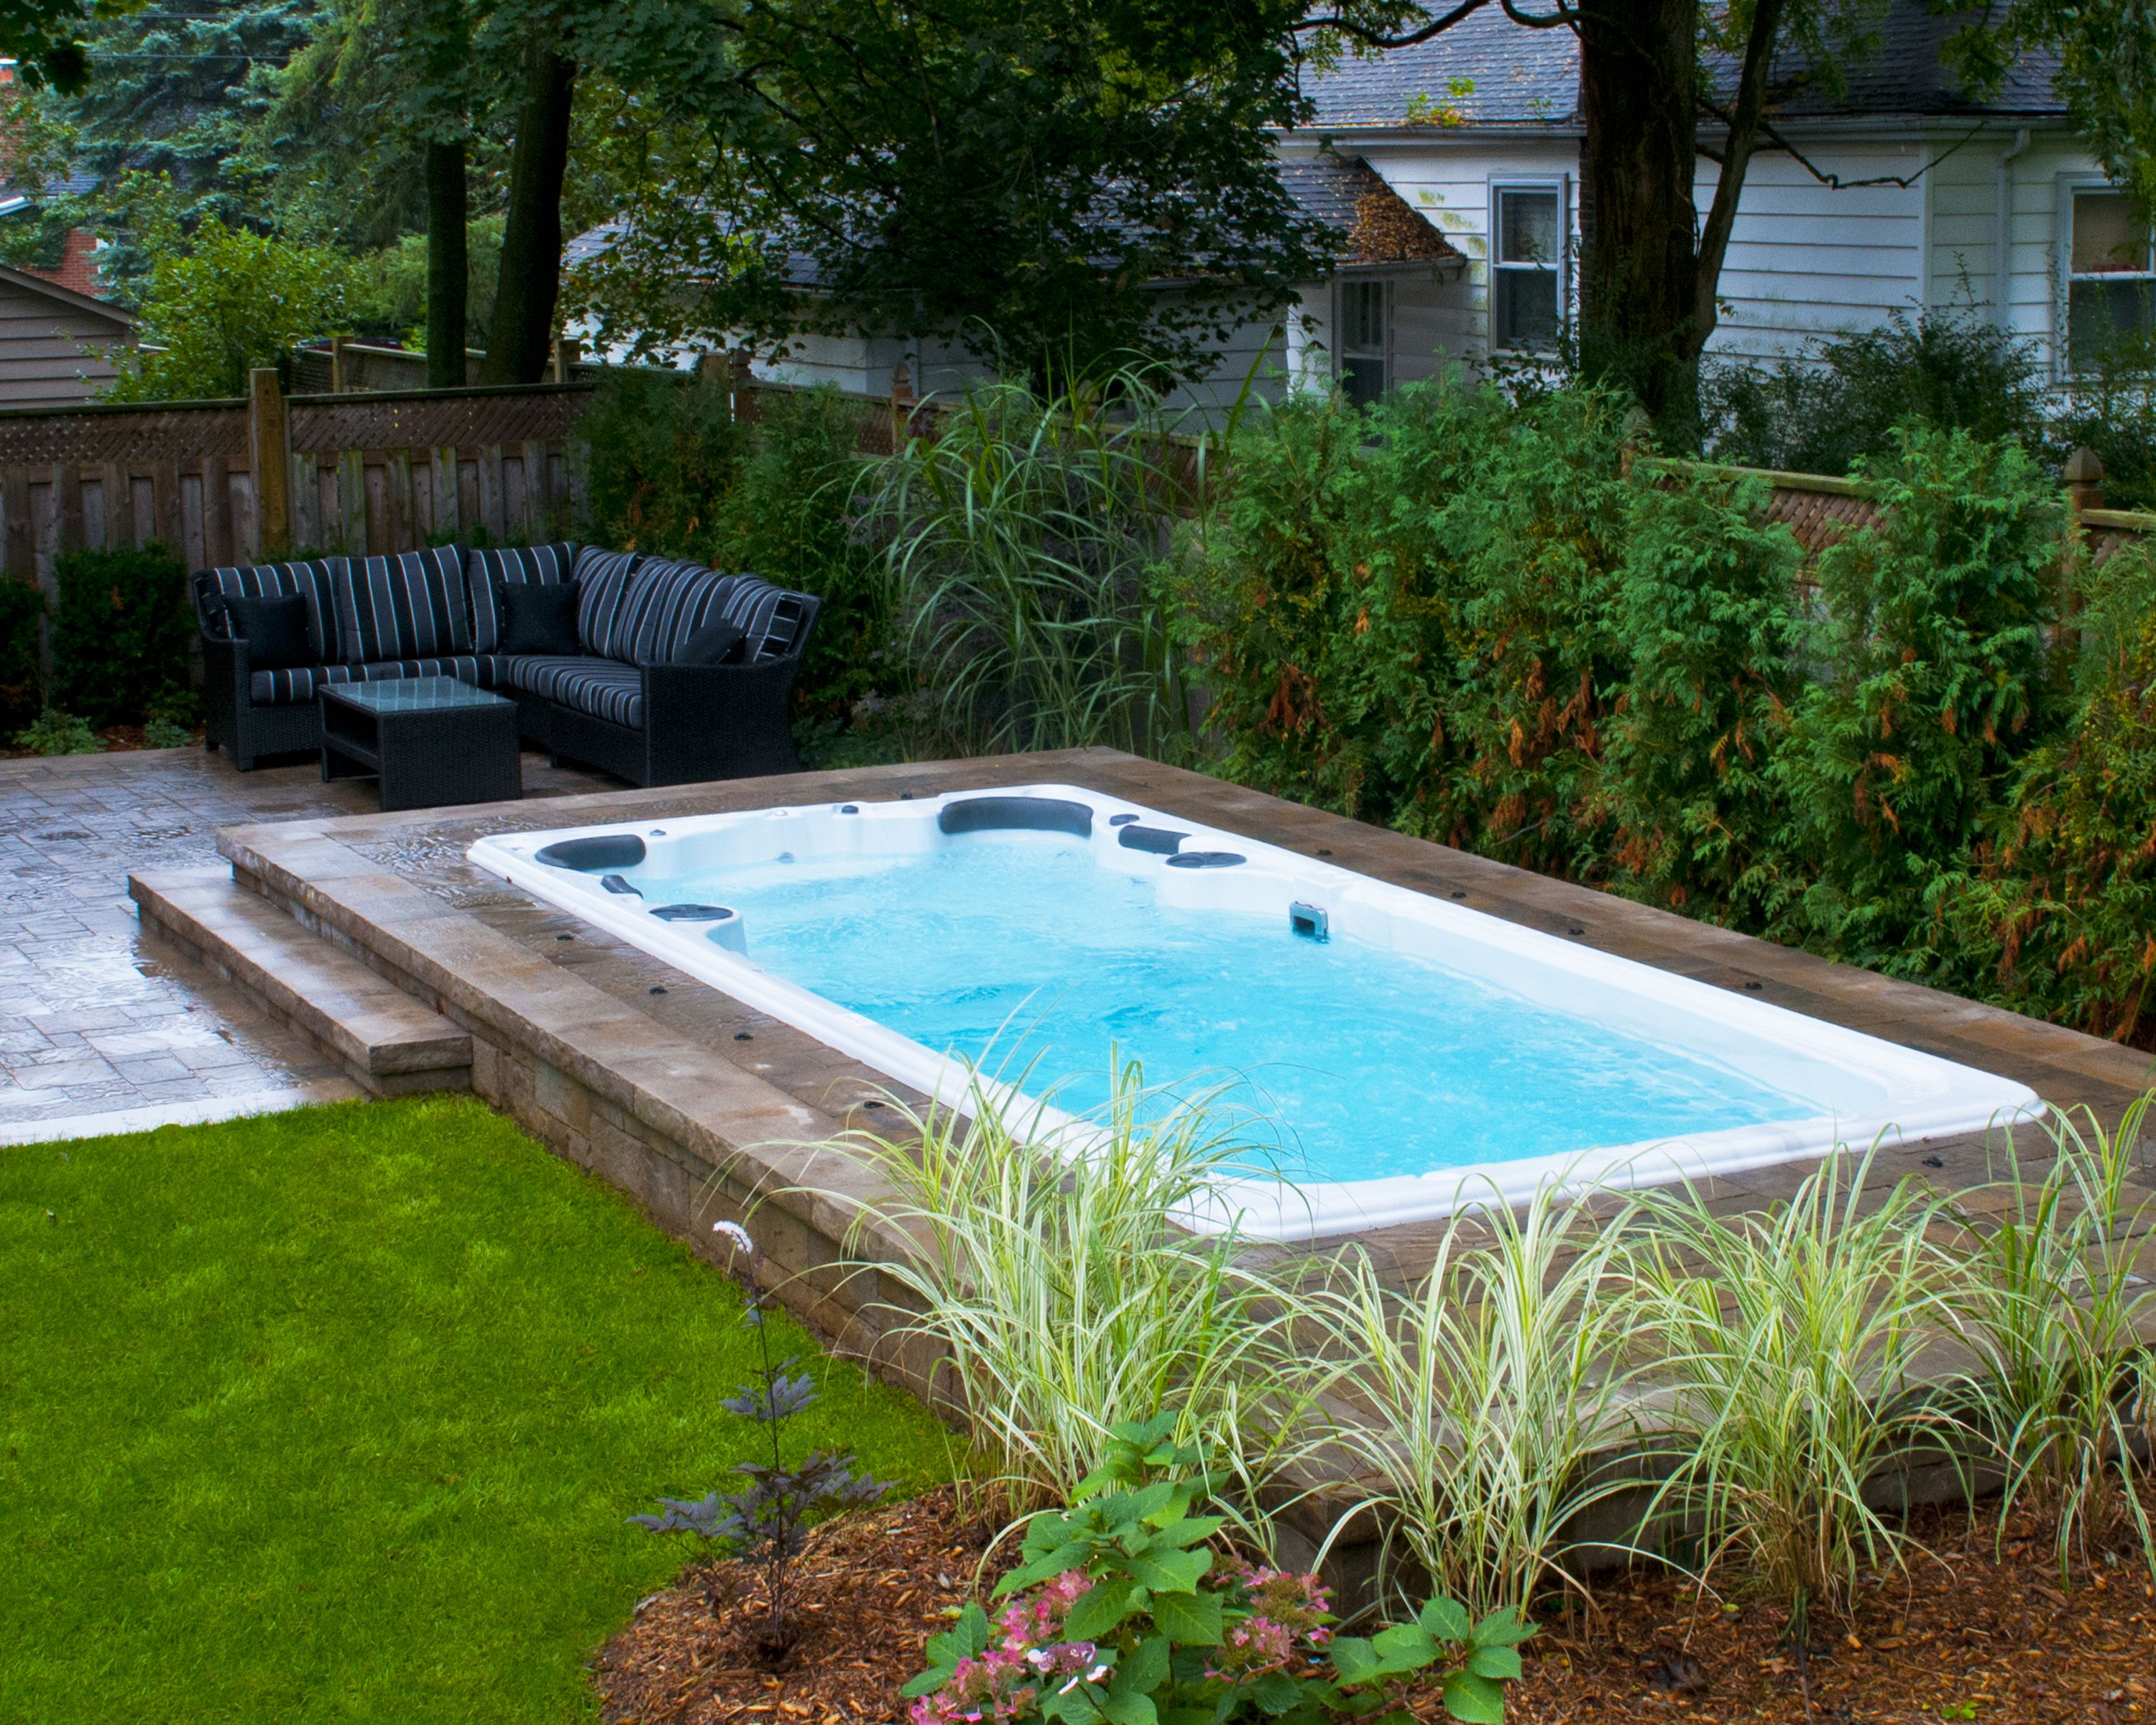 Hydropool self cleaning swim spa installed in ground with for Swimming pool spa designs